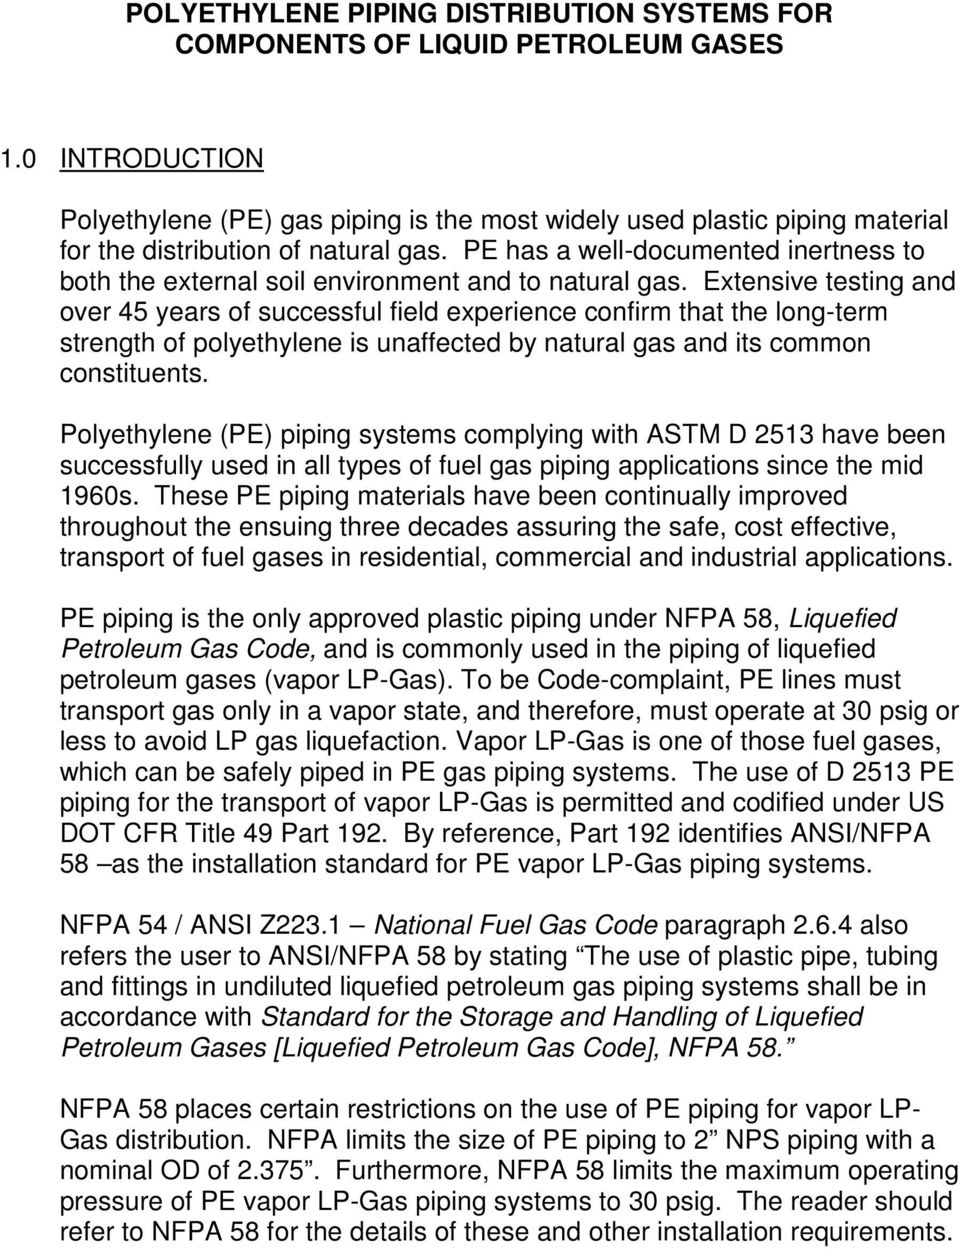 Polyethylene Piping Distribution Systems for Components of